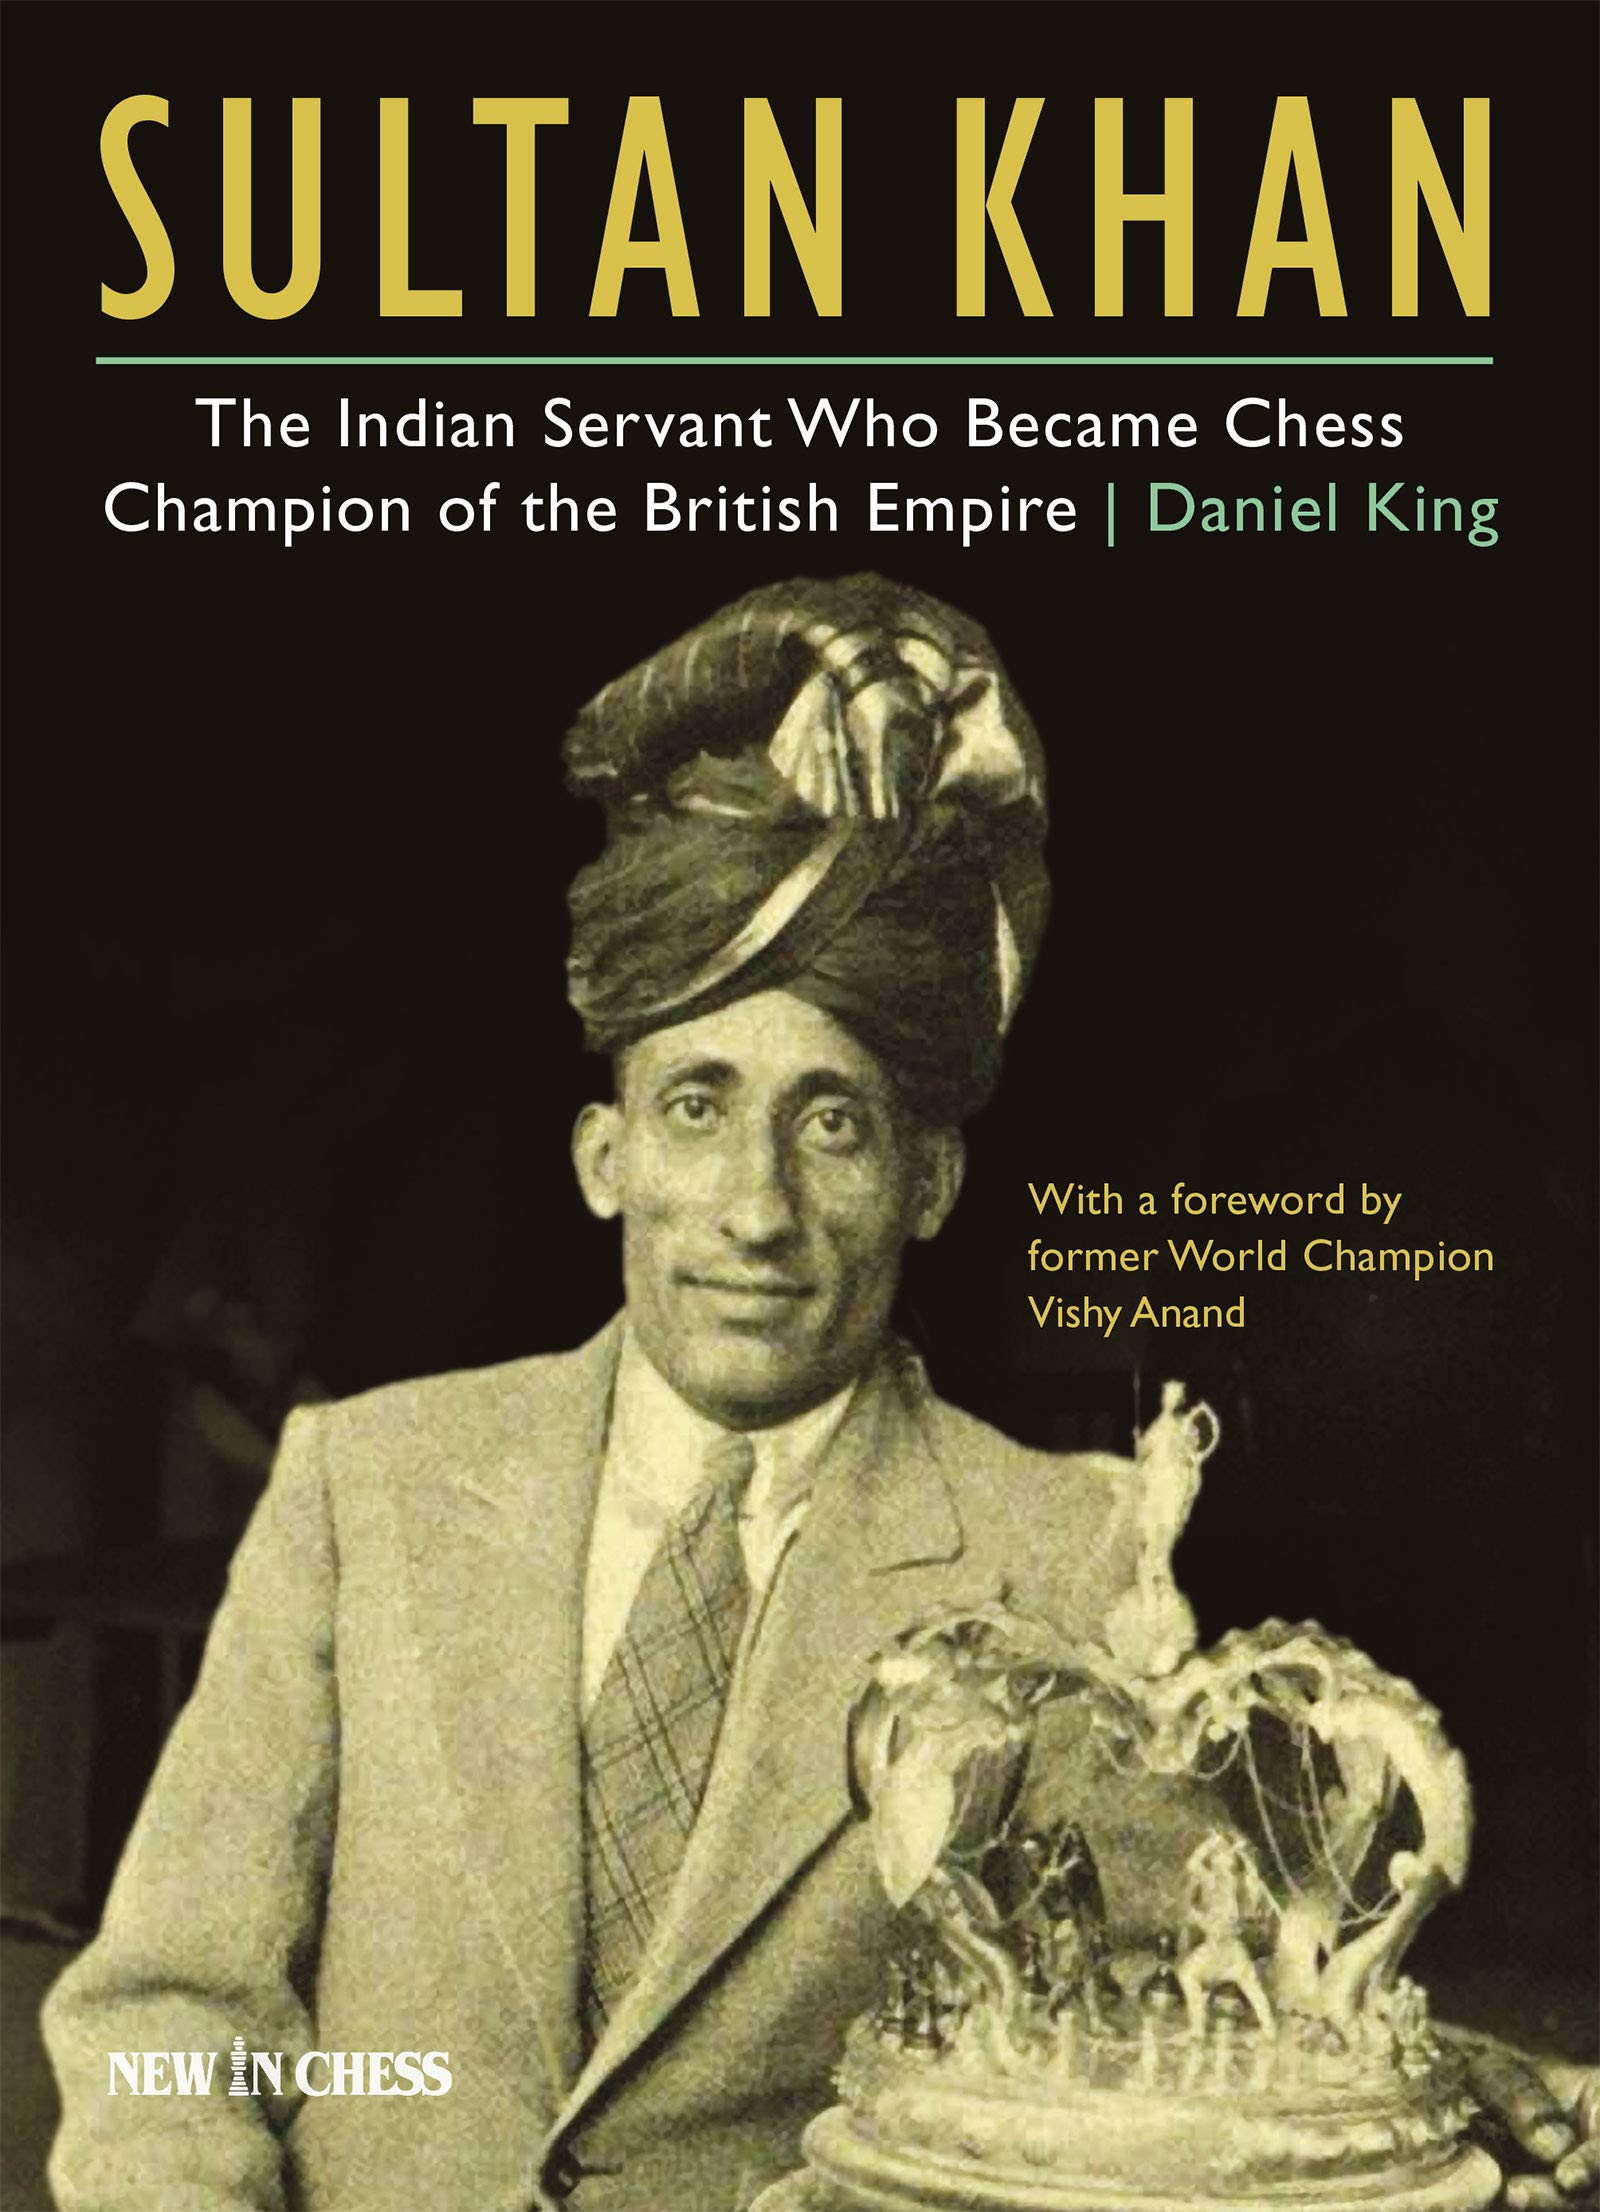 Sultan Khan: The Indian Servant Who Became Chess Champion of the British Empire